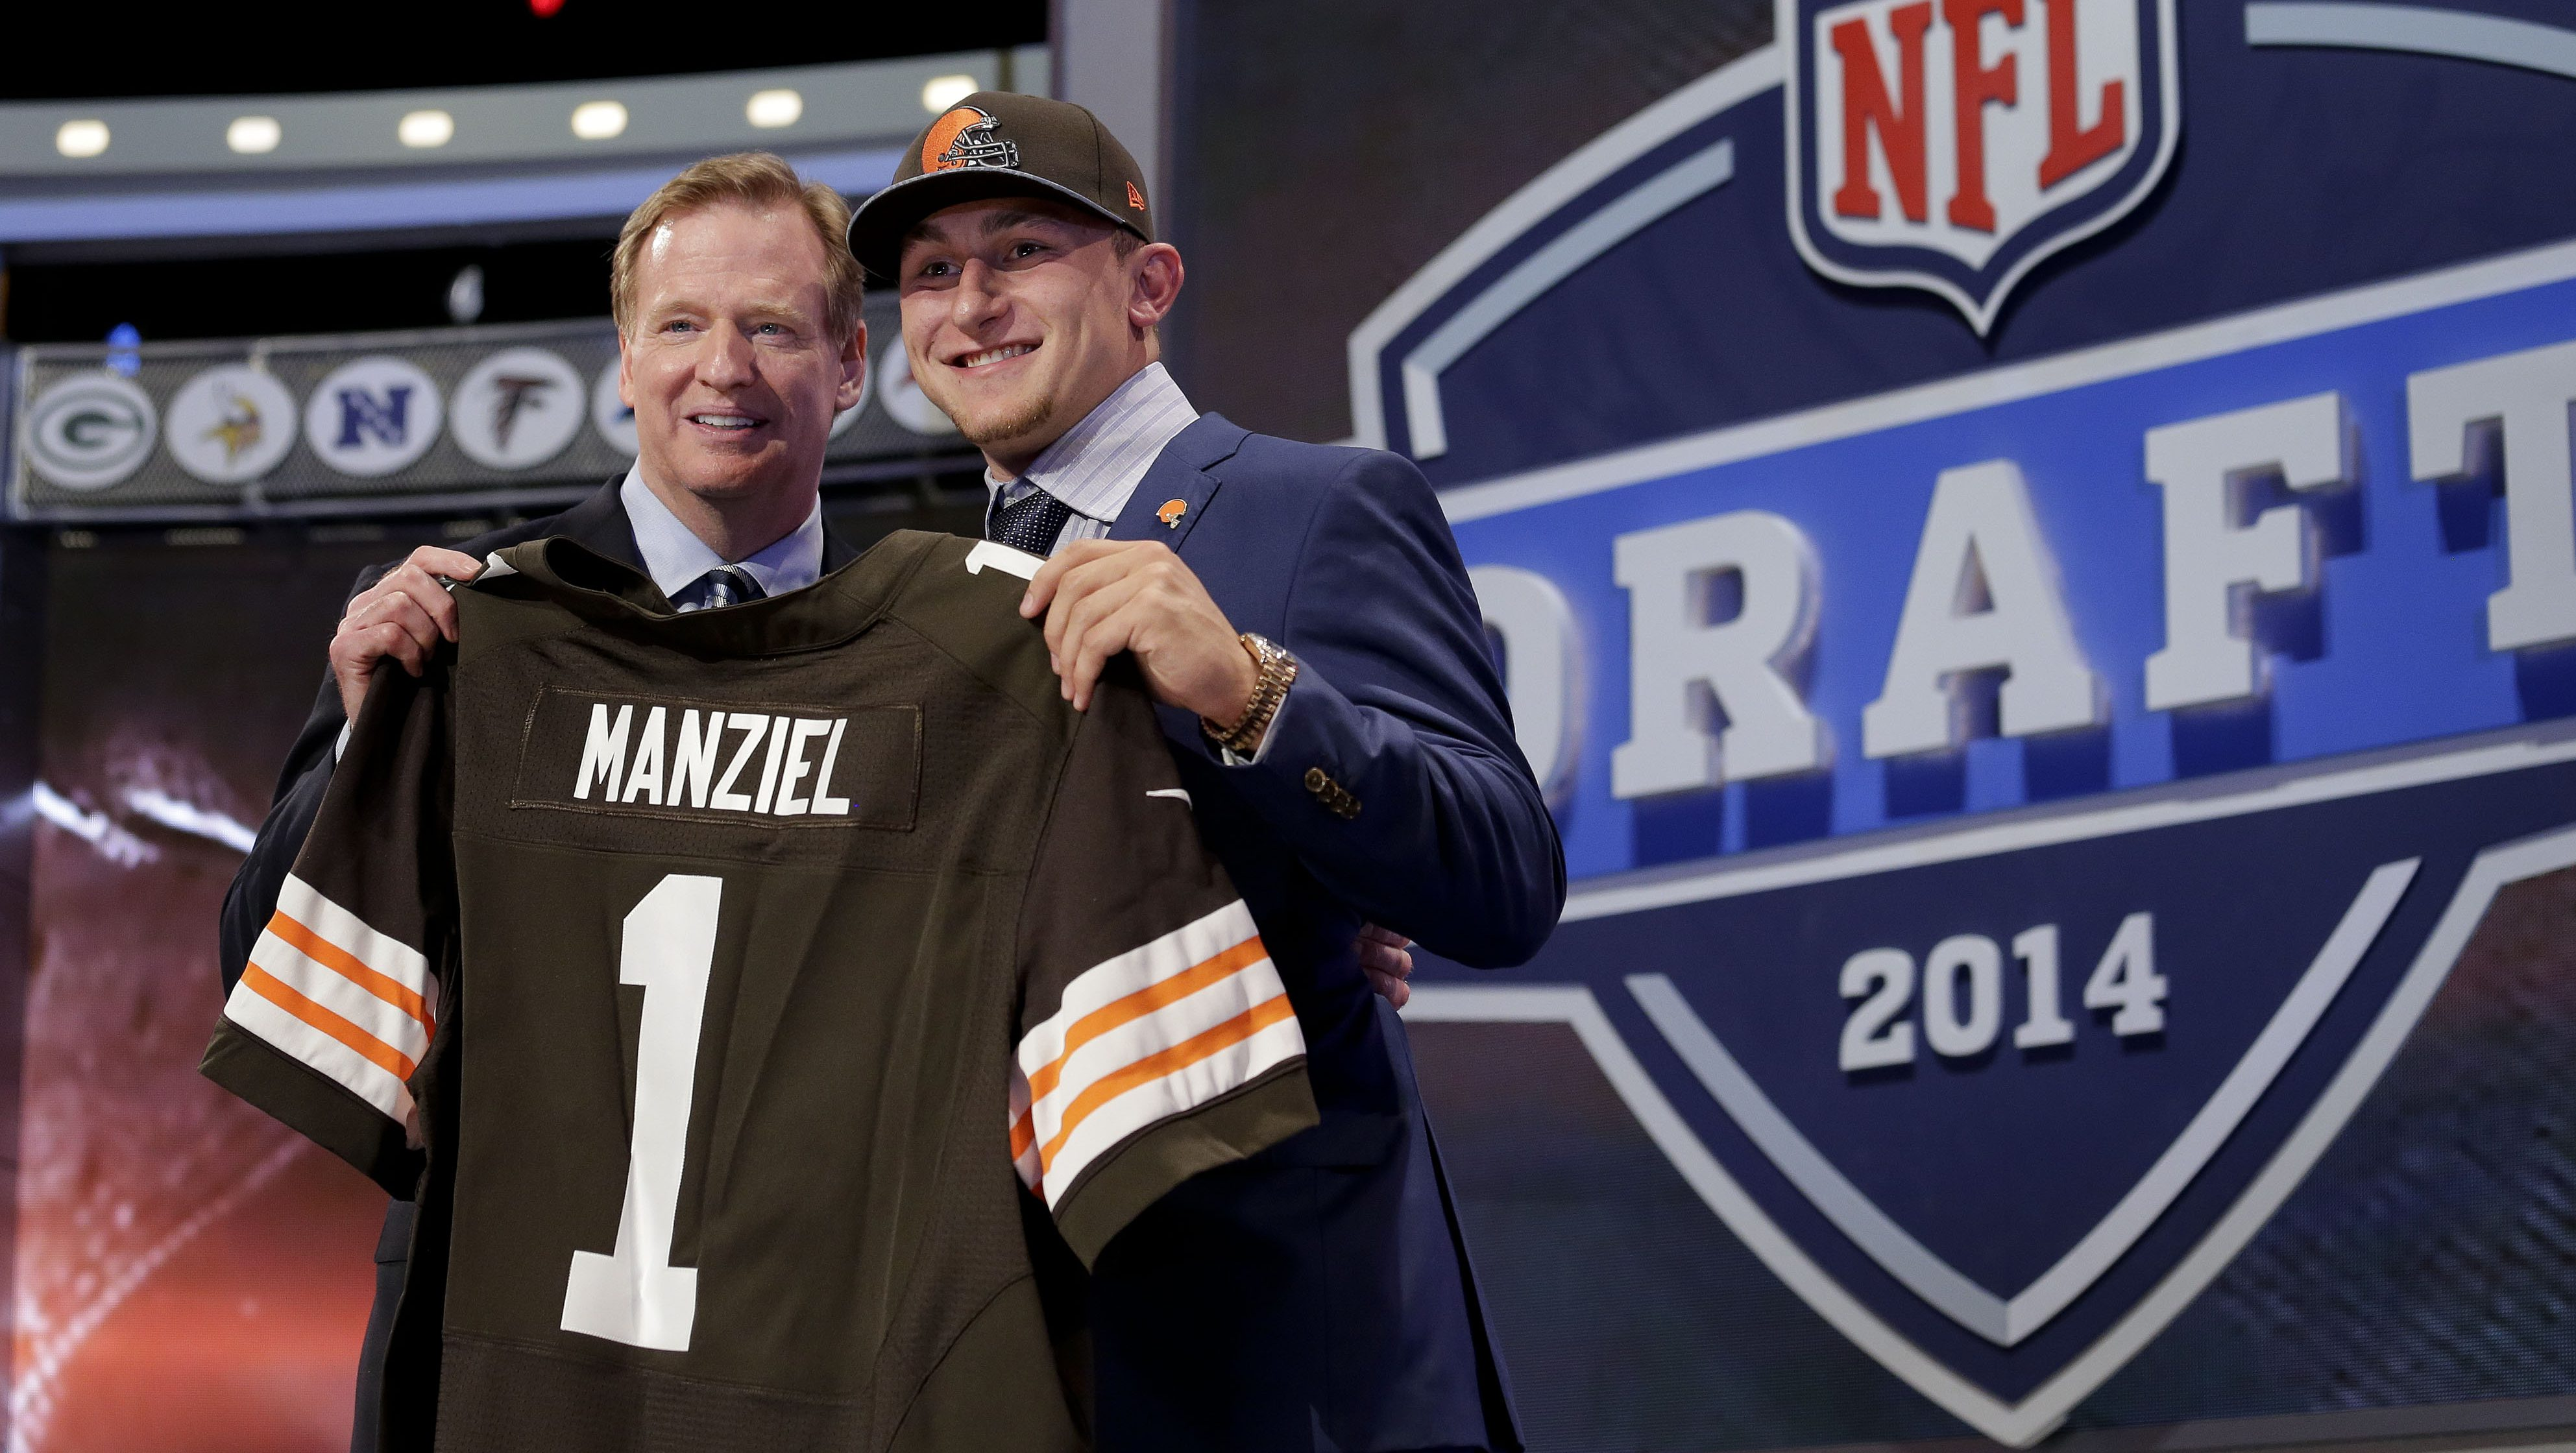 NFL Draft Football Johnny Manziel 2014